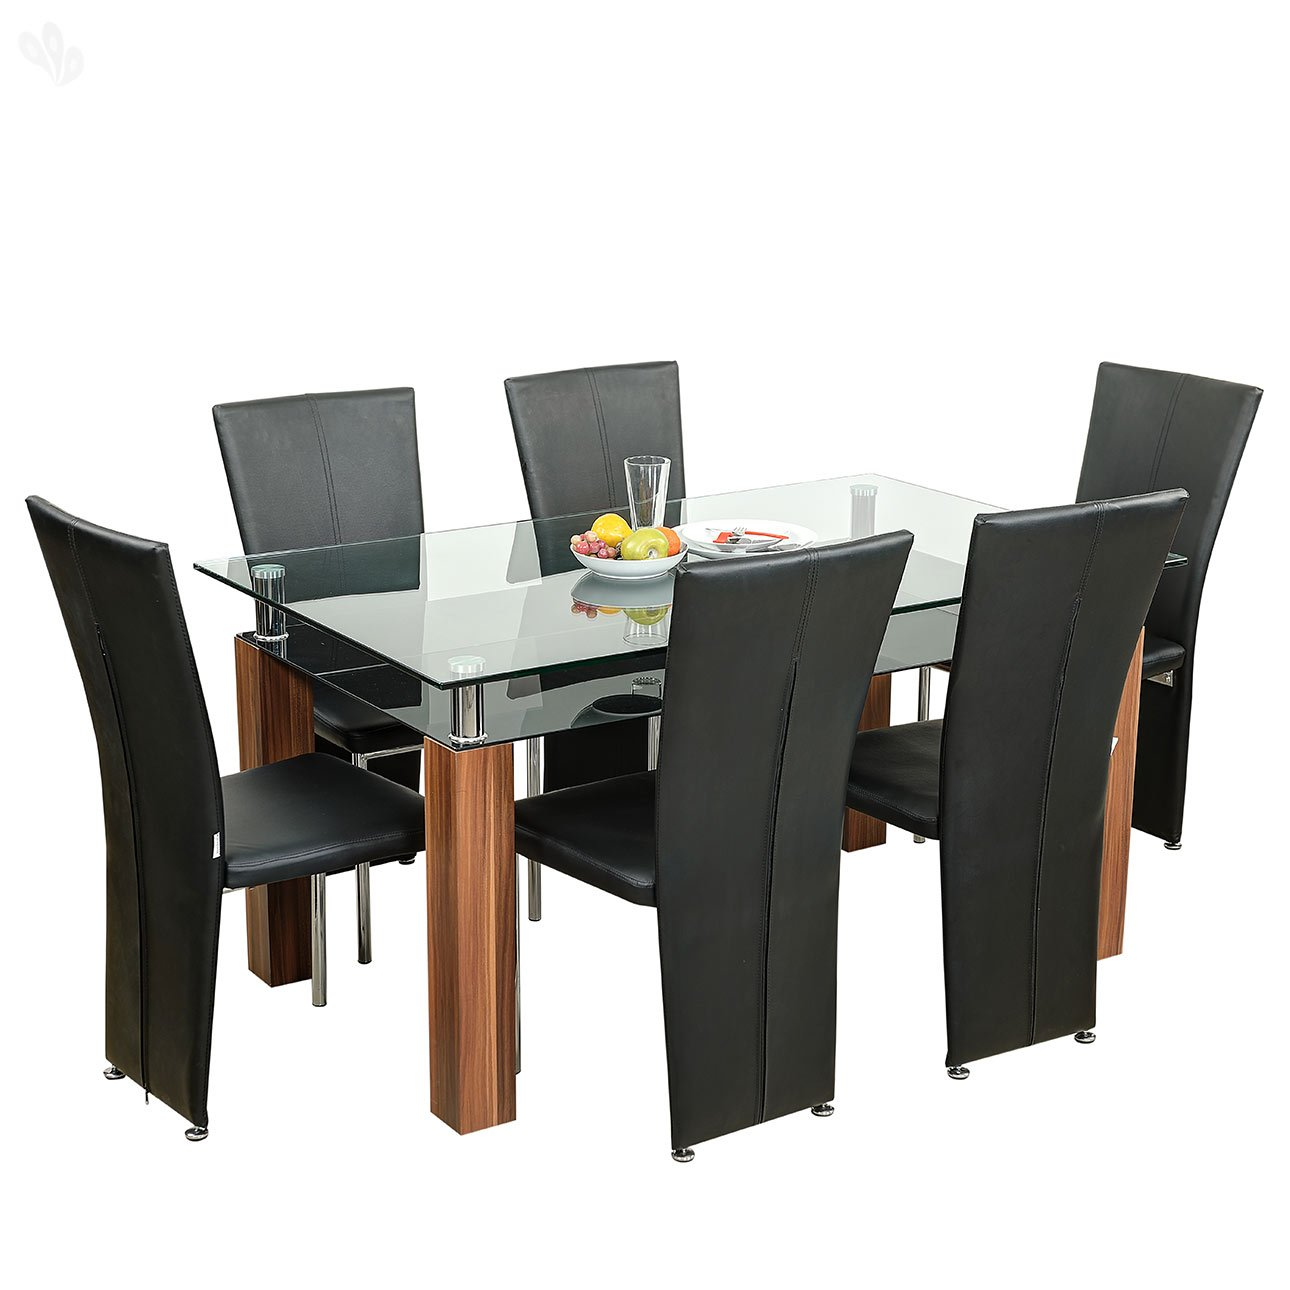 Royal Oak Barcelona Dining Table Set (Black And Brown): Amazon.in: Home U0026  Kitchen